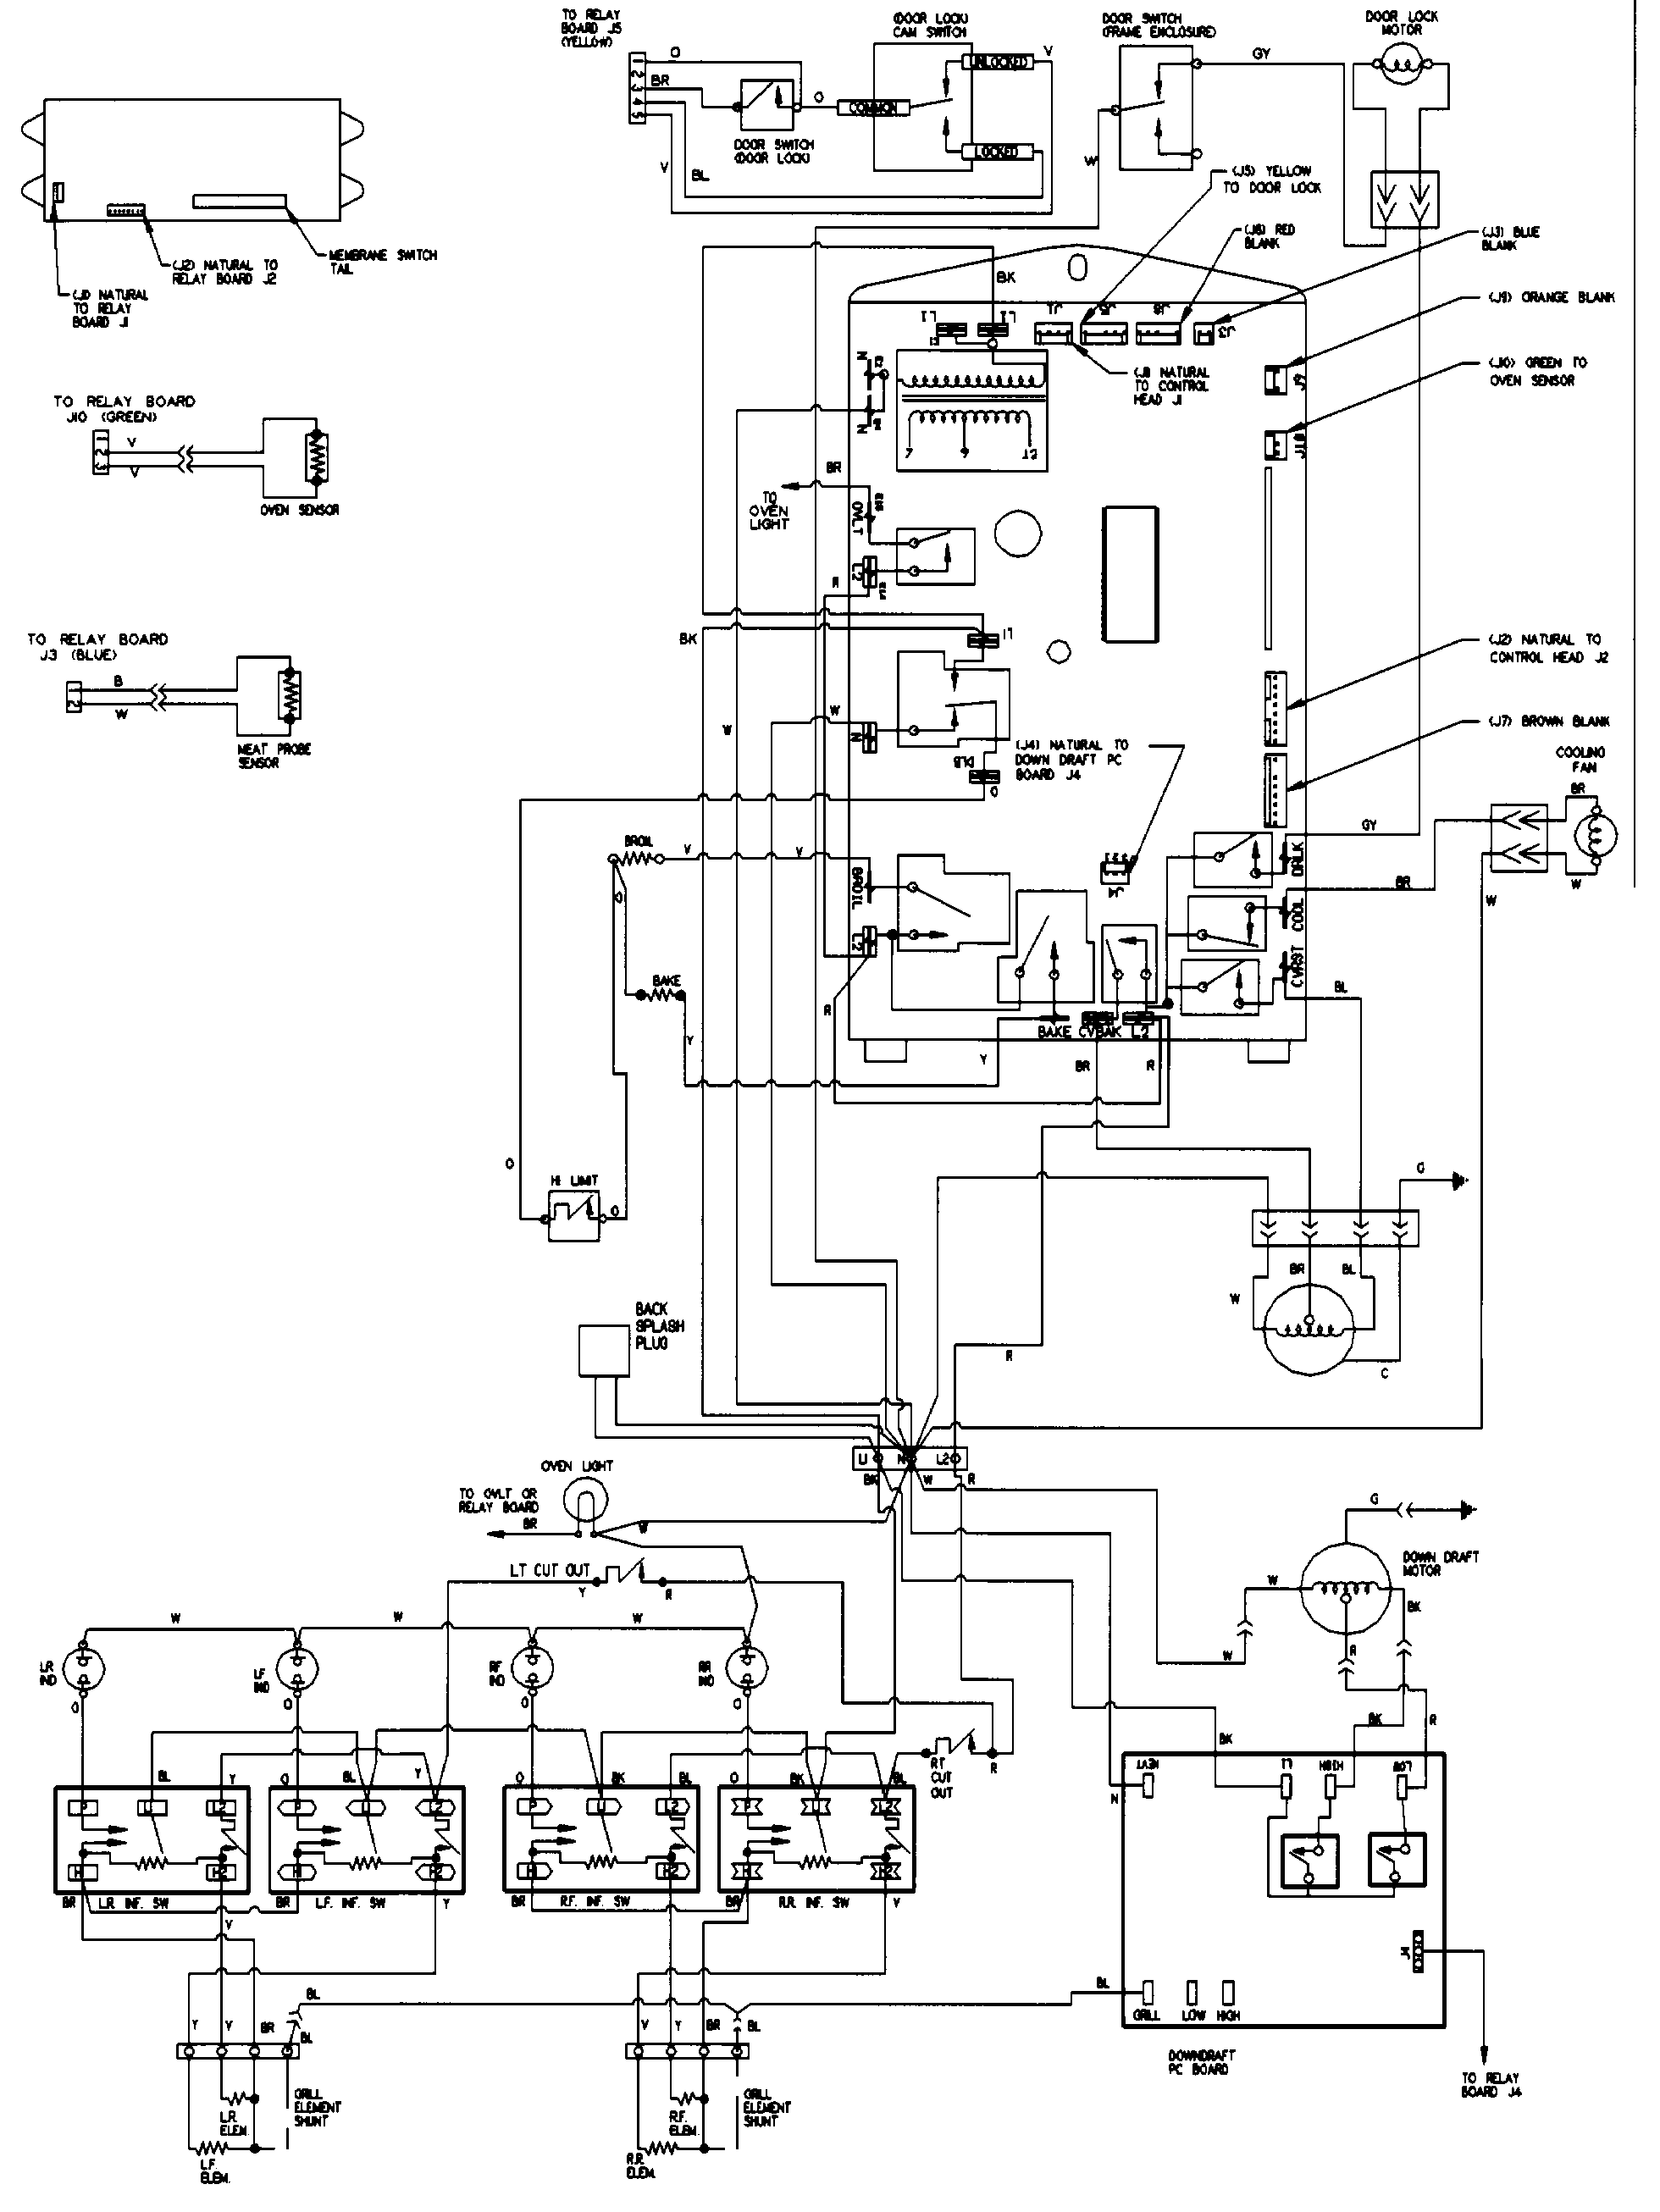 Wiring Diagram For Cooktop Reinvent Your Kawasaki Er 5 Jenn Air Stove Detailed Schematics Rh Keyplusrubber Com